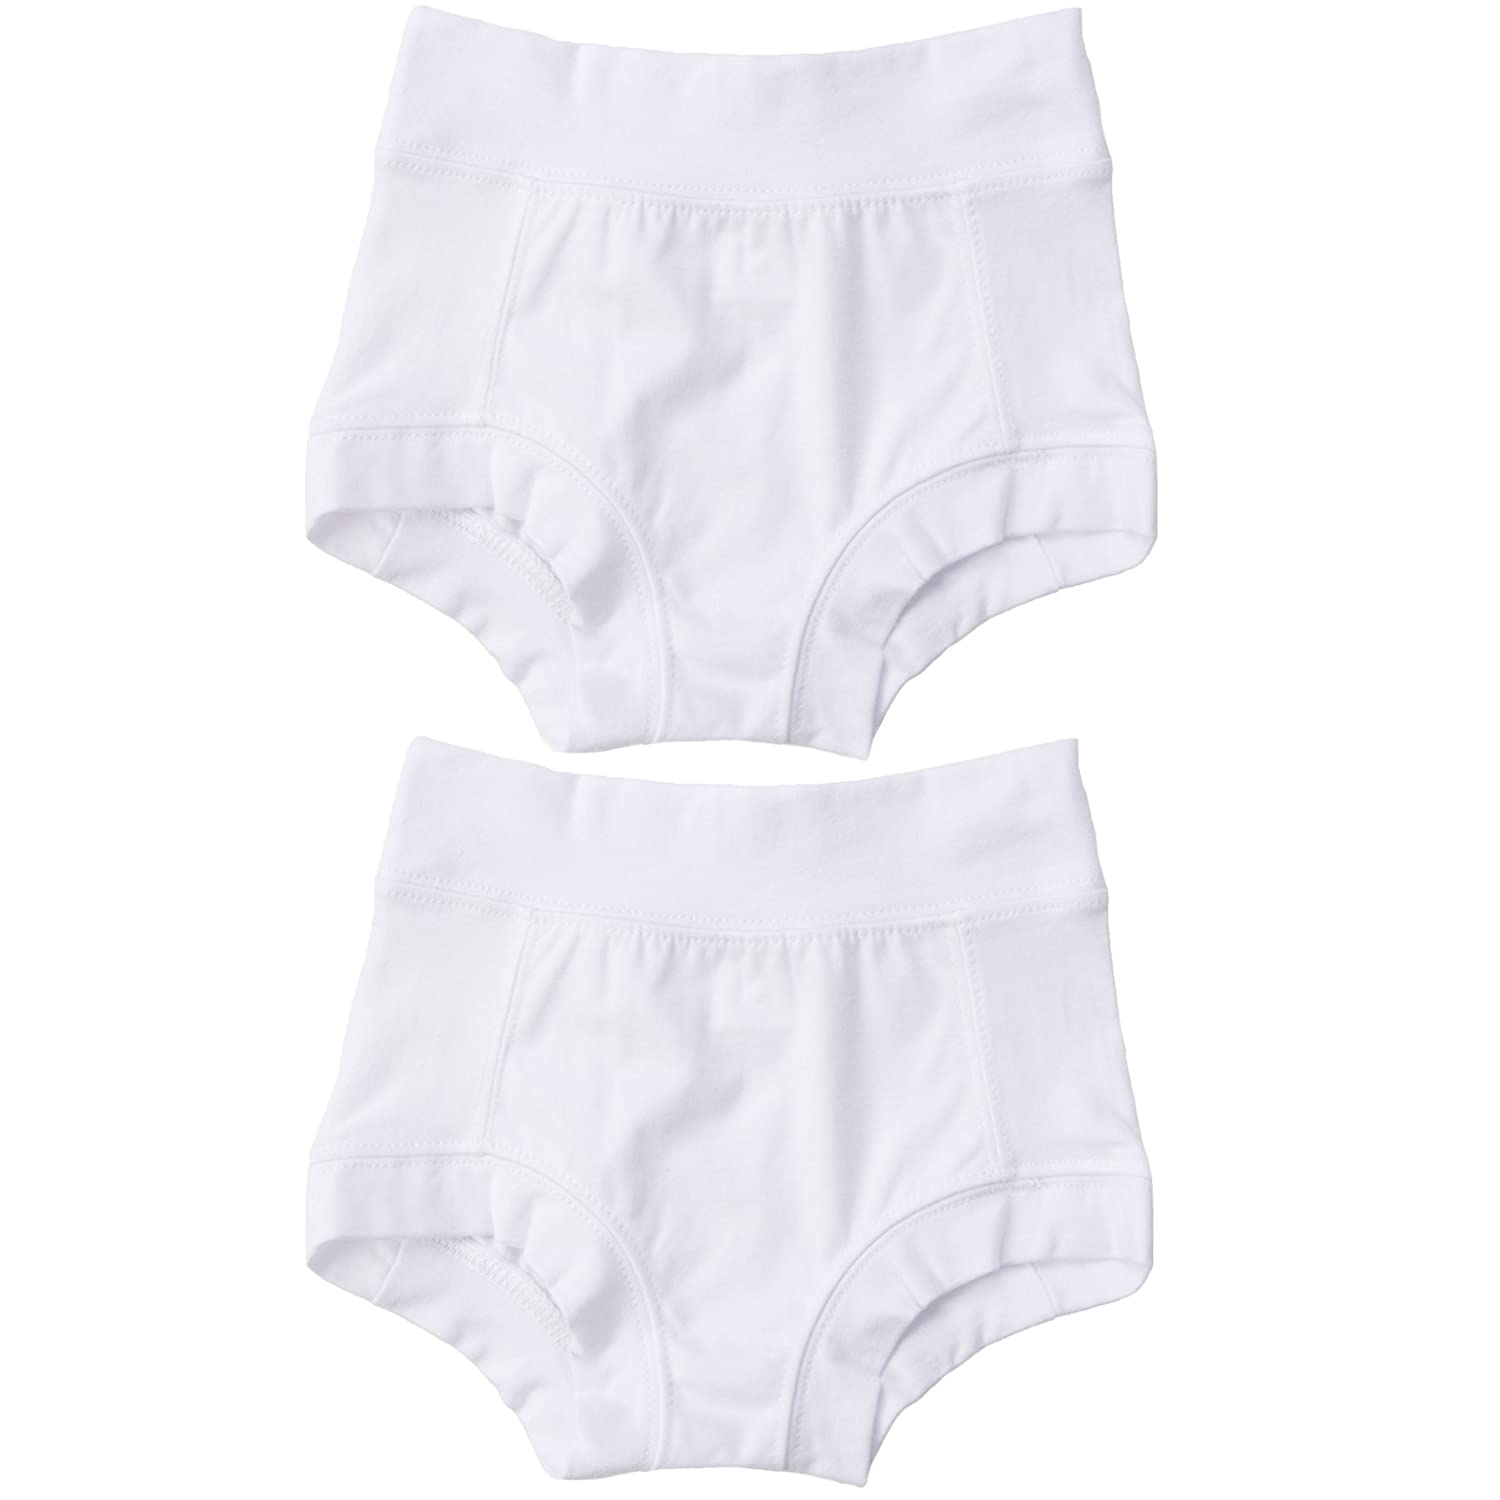 Oops! Undies Cloth Potty Training Pants Waterproof Bamboo Underwear White 2 Pack (2-3 years fits 15 waist) Tree Hugger Brands Inc.